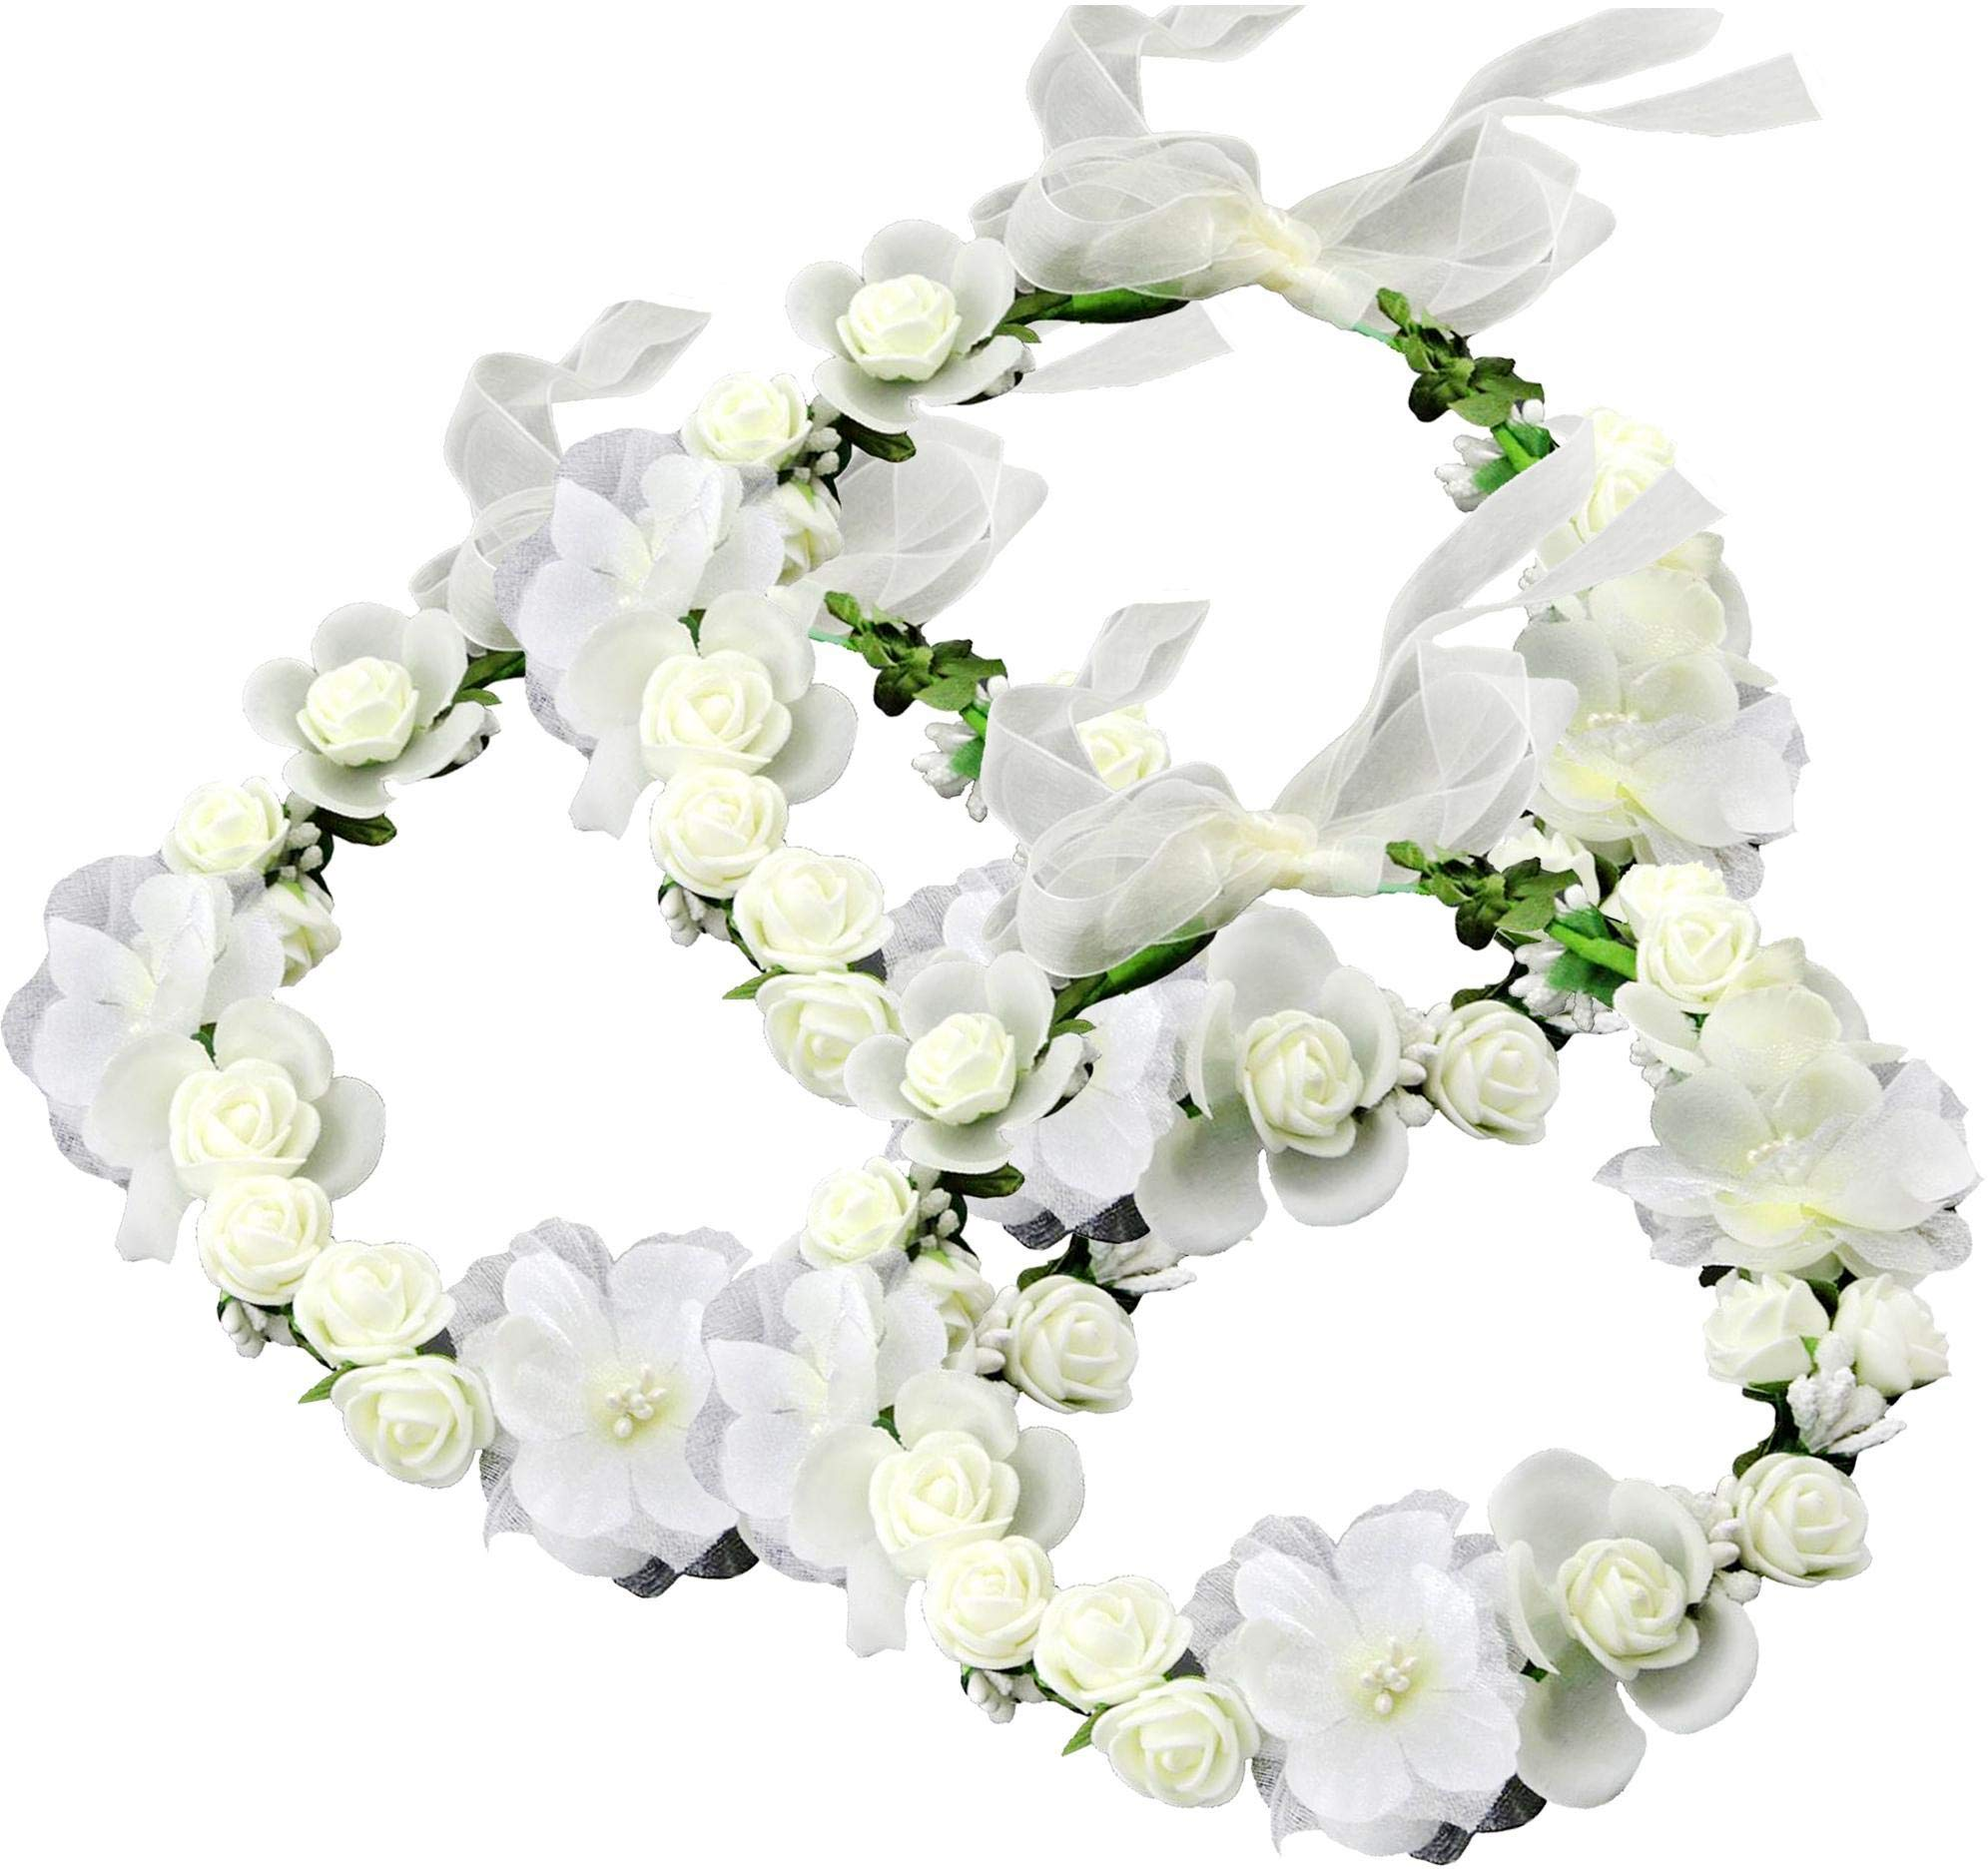 Flower Crown Floral Headbands Headpiece Wreath Girls Womens Artificial White Silk Roses Wedding Bridal Kids Toddler Boho (3), White, Ivory